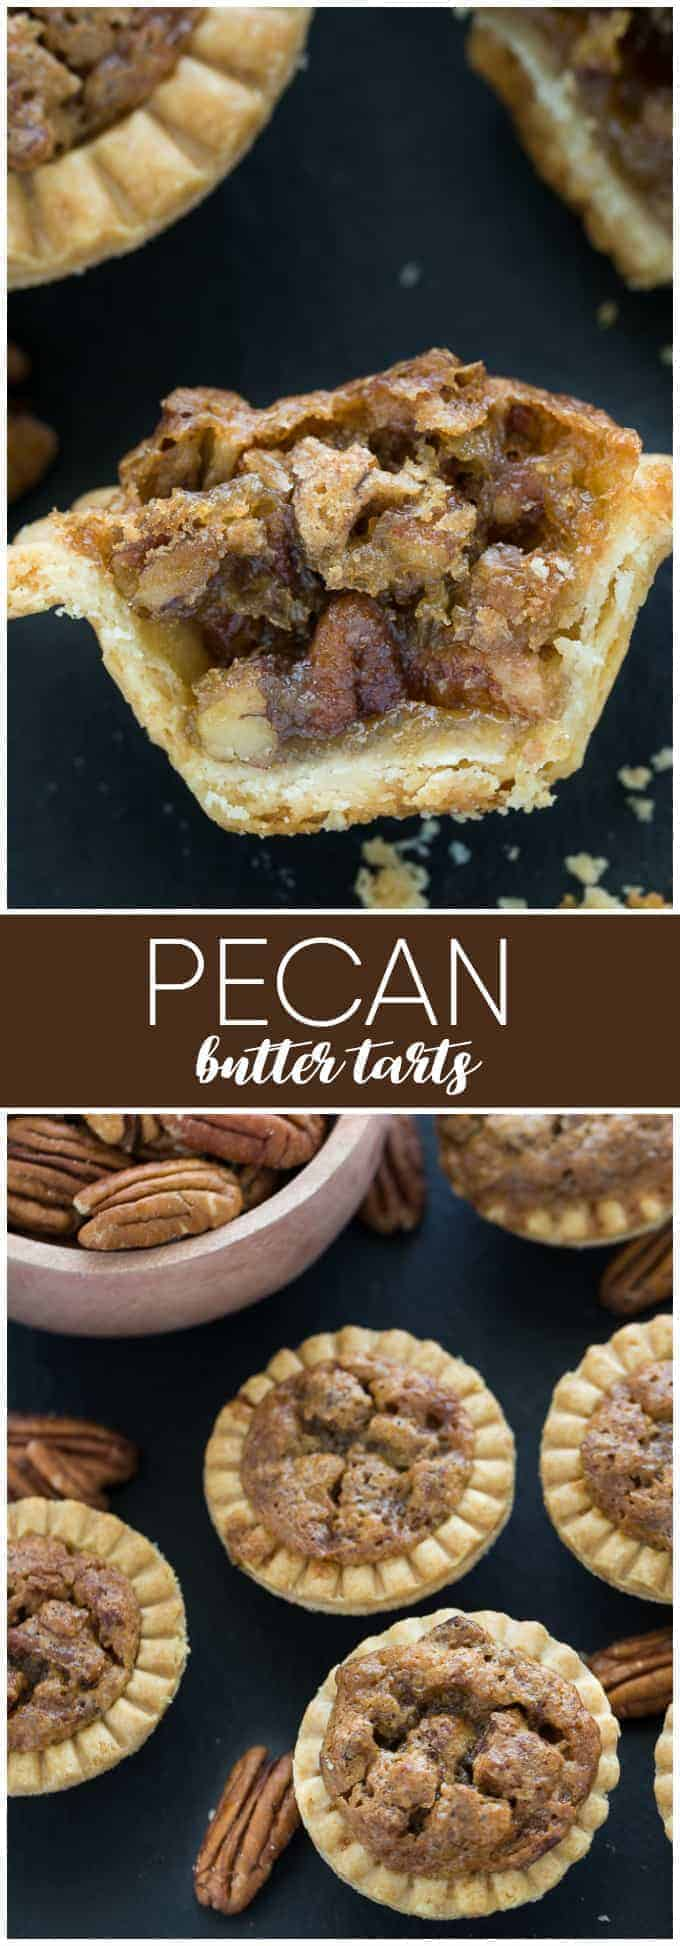 Pecan Butter Tarts - A classic Canadian dessert that are actually quite easy to make. They are sweet, gooey and the perfect treat to end a nice meal.